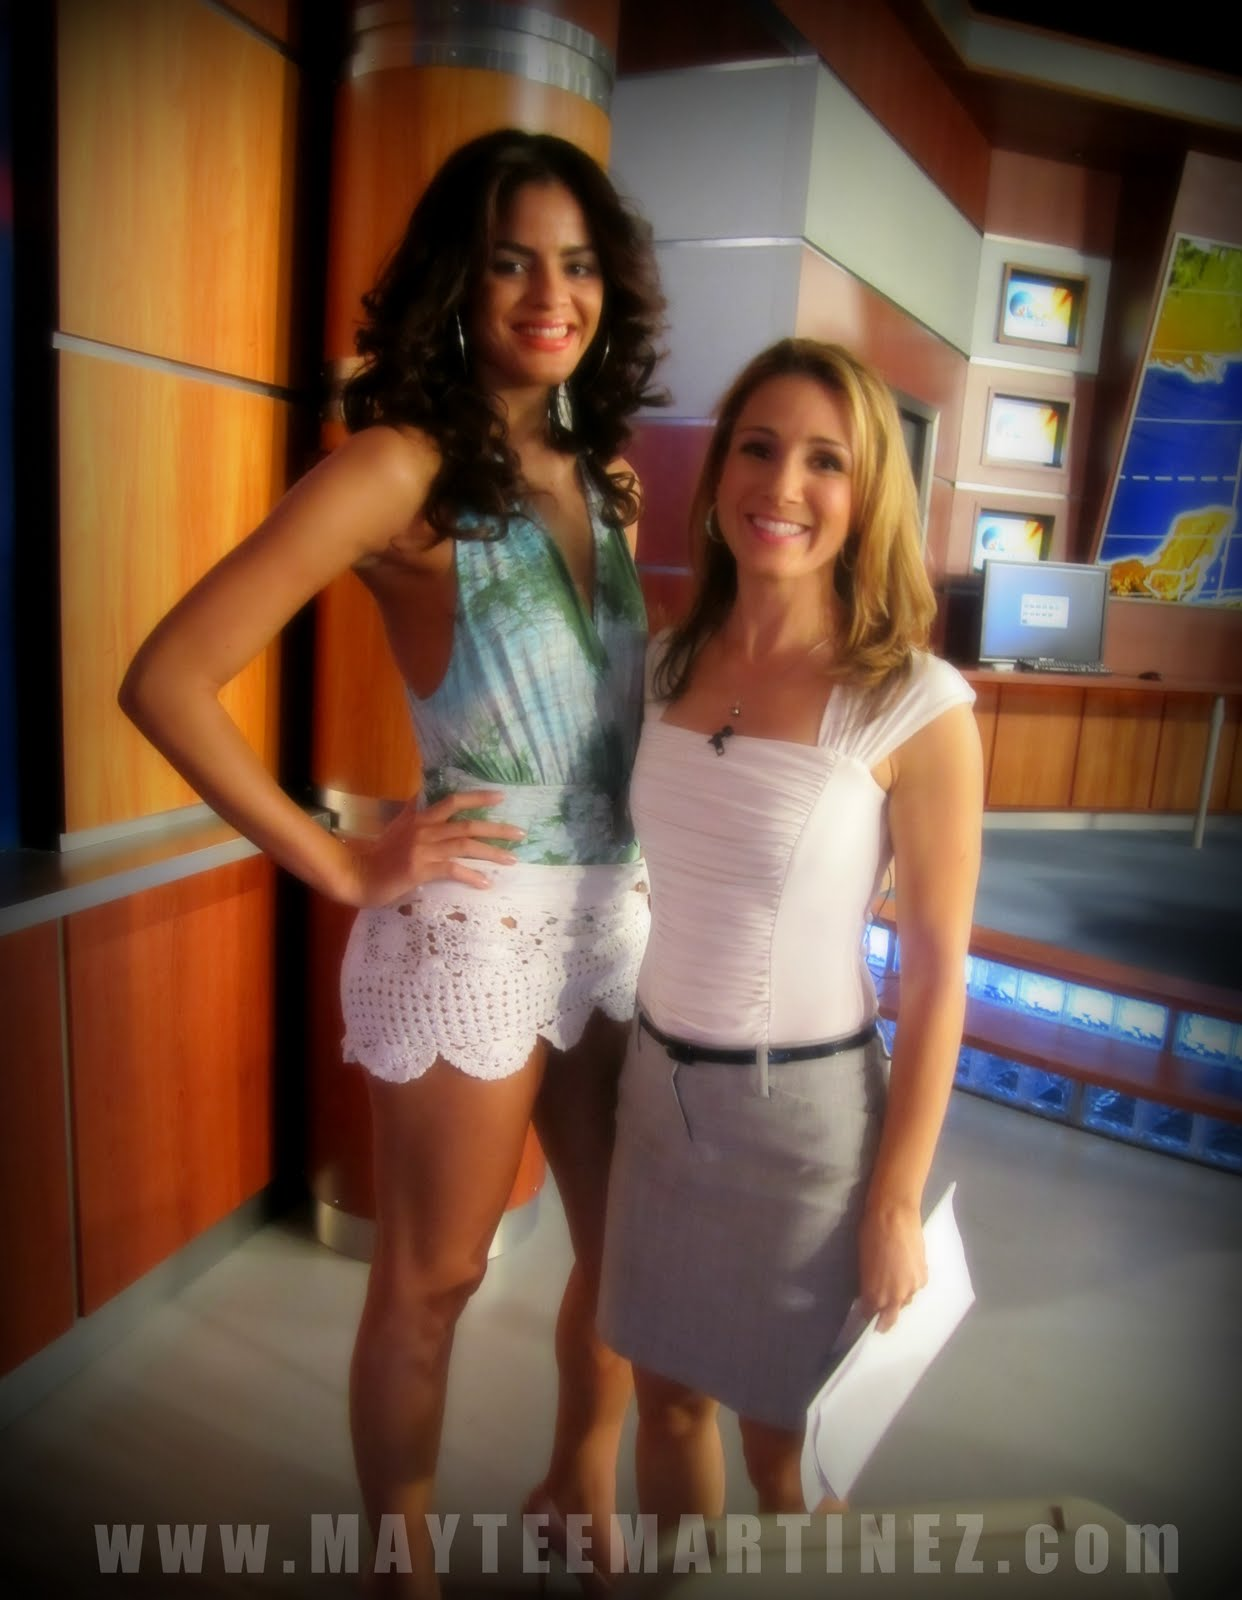 maytee martinez today on nbc shooting for curves n